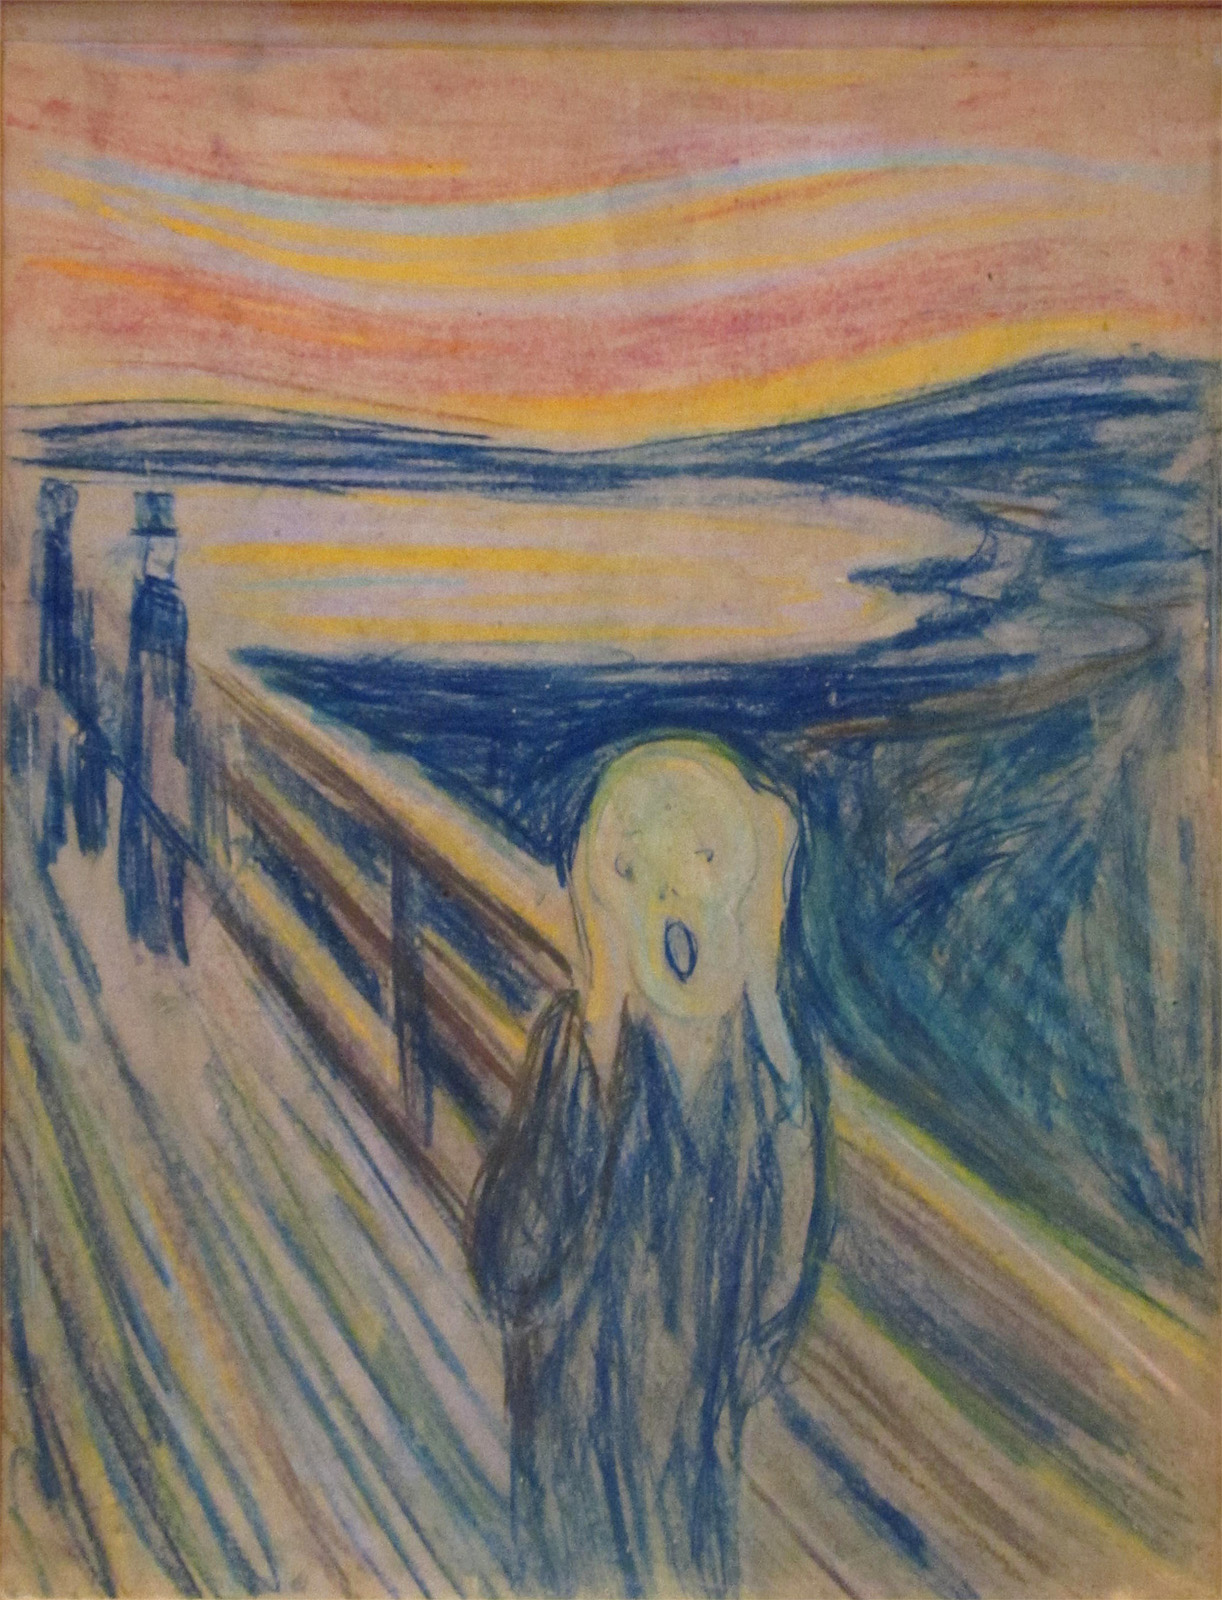 edvard munch the scream Edvard munch's famous painting the scream is arguably one of the most recognizable paintings in the world the painting, which is often referred to as an icon of.